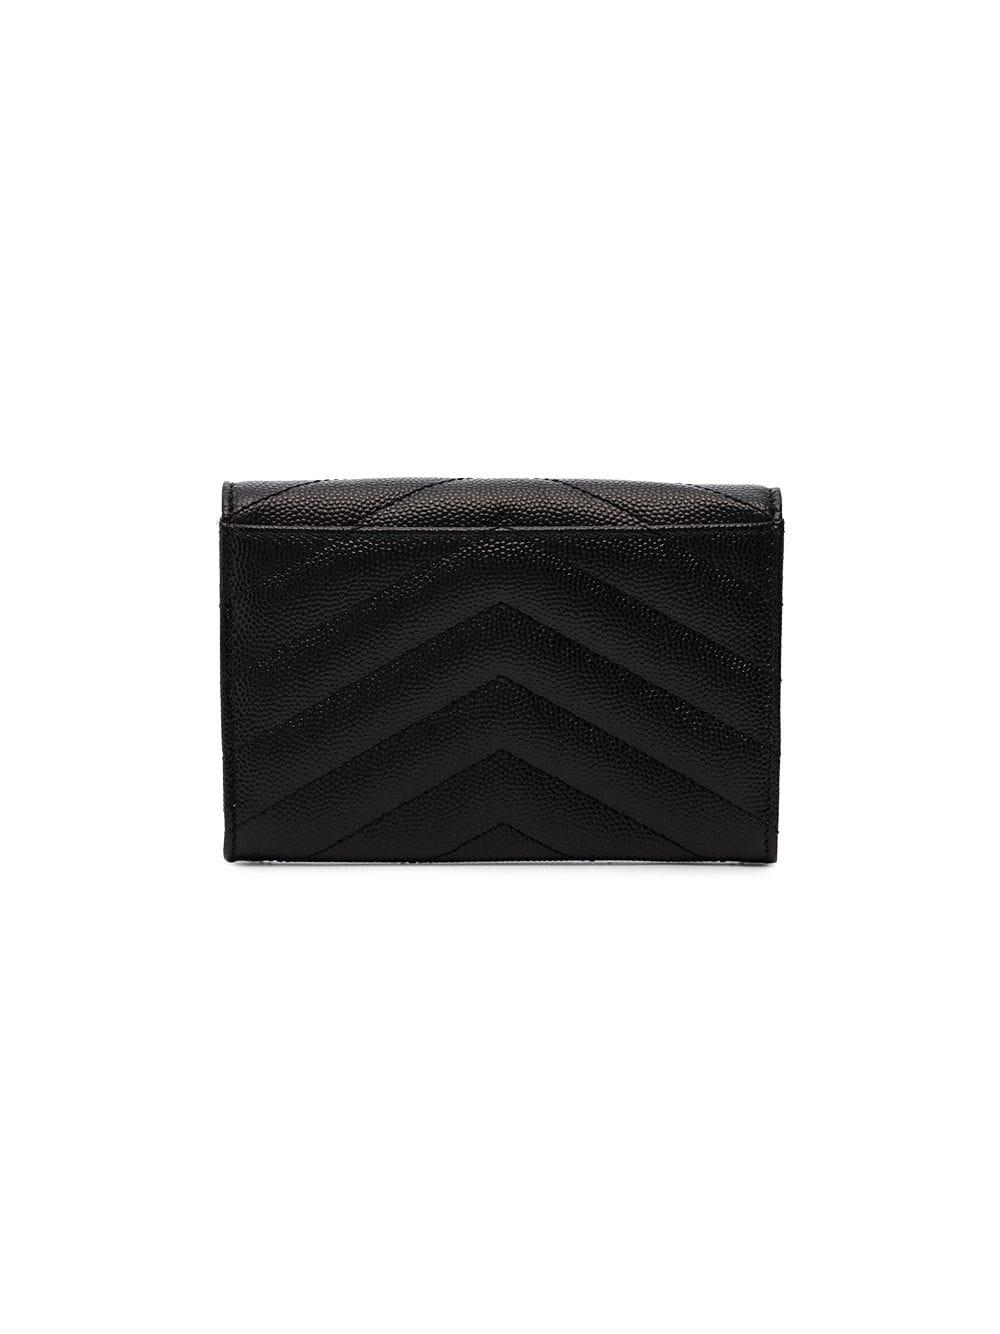 Saint Laurent - Black Monogram Quilted Grained Leather Wallet - Lyst. View  fullscreen c9bebf2b3d140